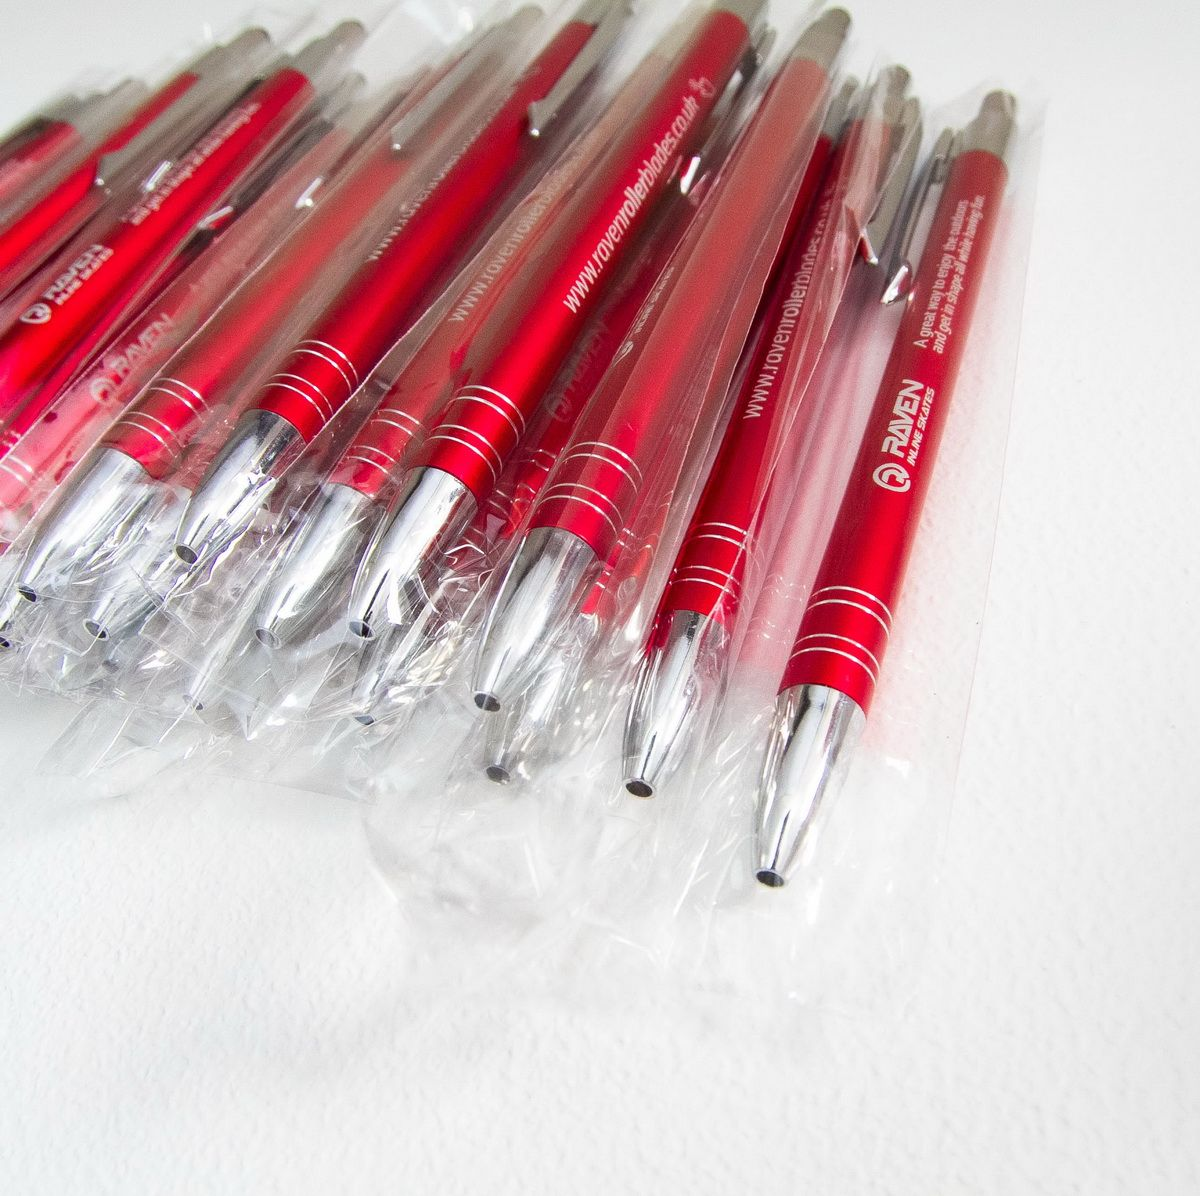 Custom-Printed-Ballpens-Engraved-Southampton-UK-Promotional-Pens-Keyrings-Notepads-3